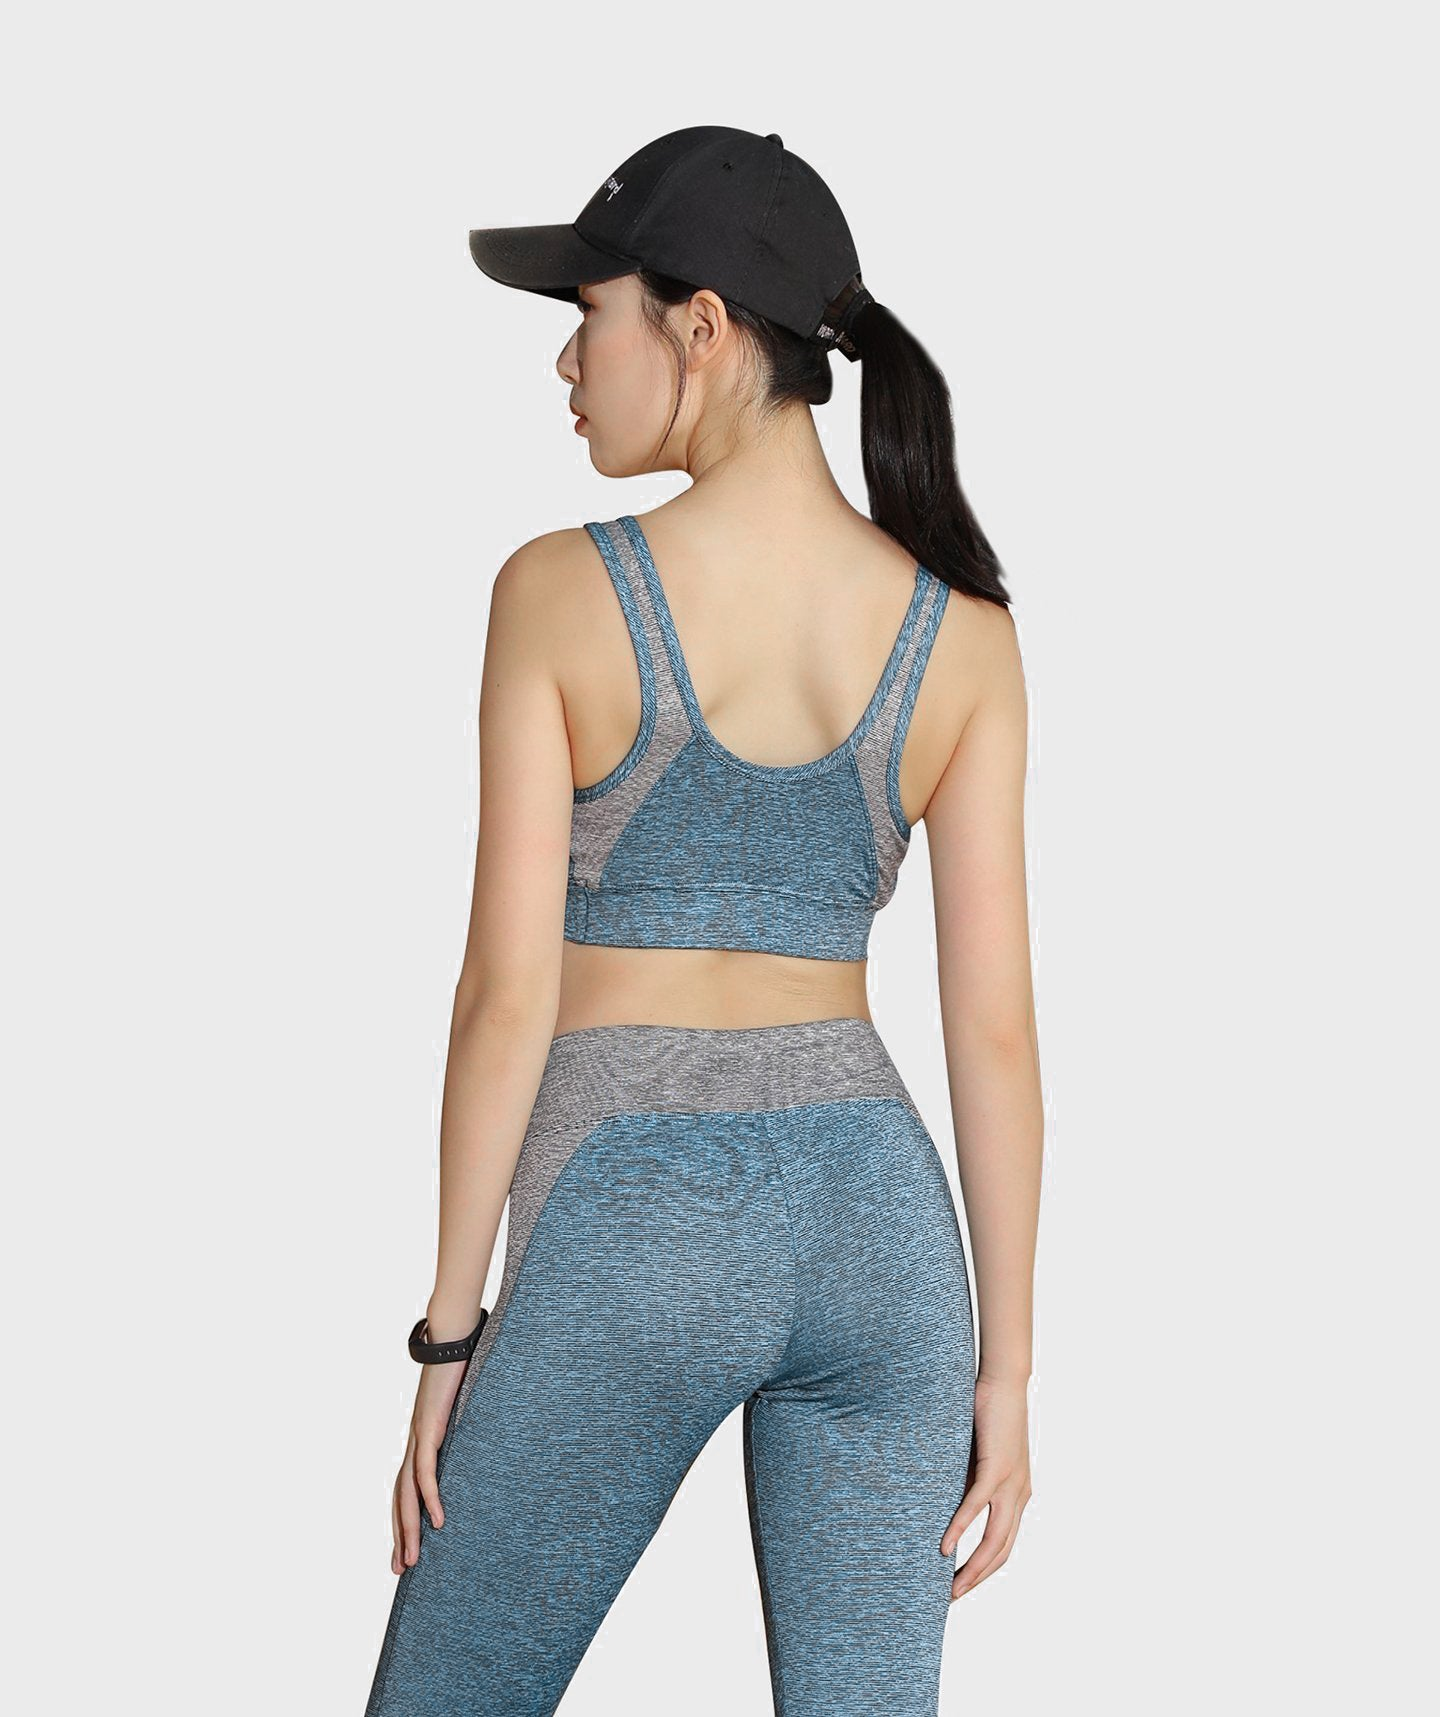 Inside Glamour Padded Comfort Sports Bra - Blue